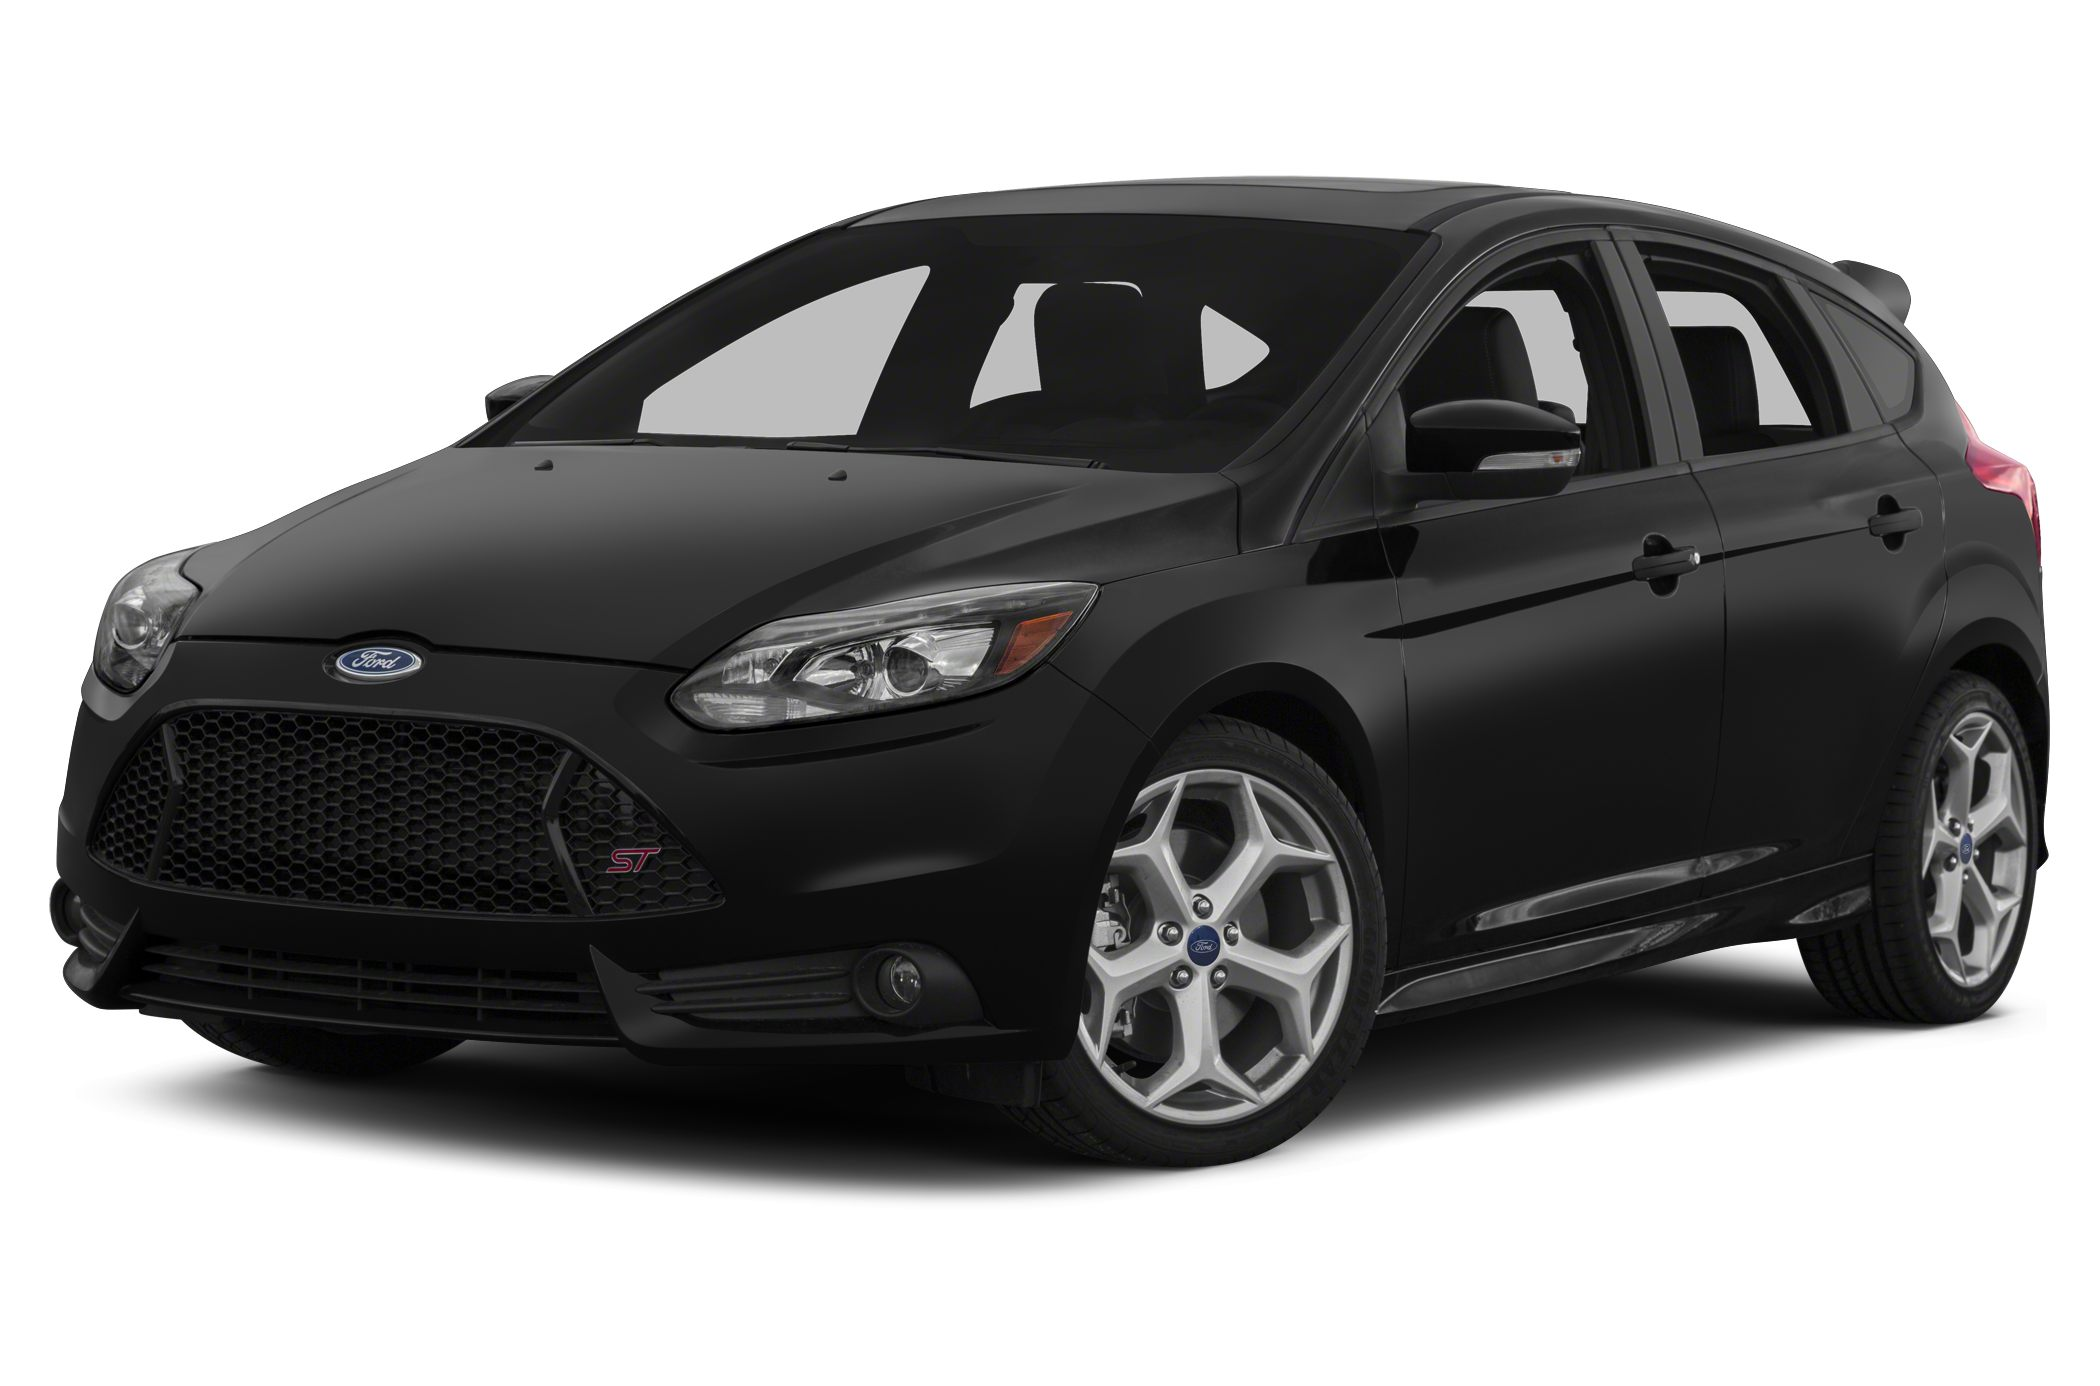 2014 Ford Focus ST Base Hatchback for sale in Breaux Bridge for $30,270 with 5 miles.